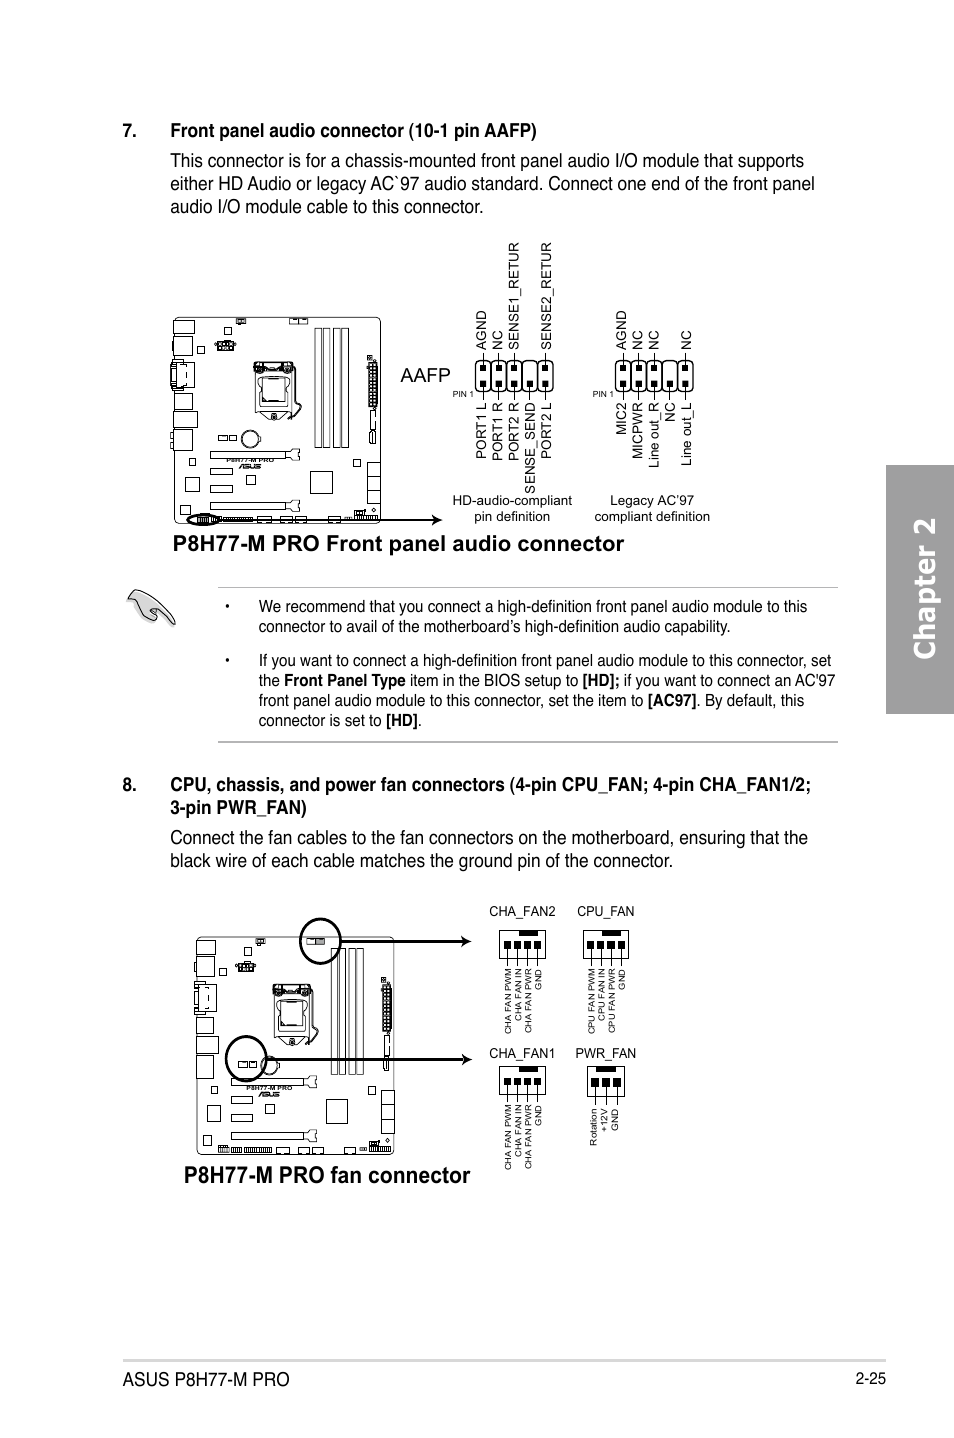 Define cpu user manuals array chapter 2 p8h77 m pro fan connector p8h77 m pro front panel audio rh fandeluxe Image collections